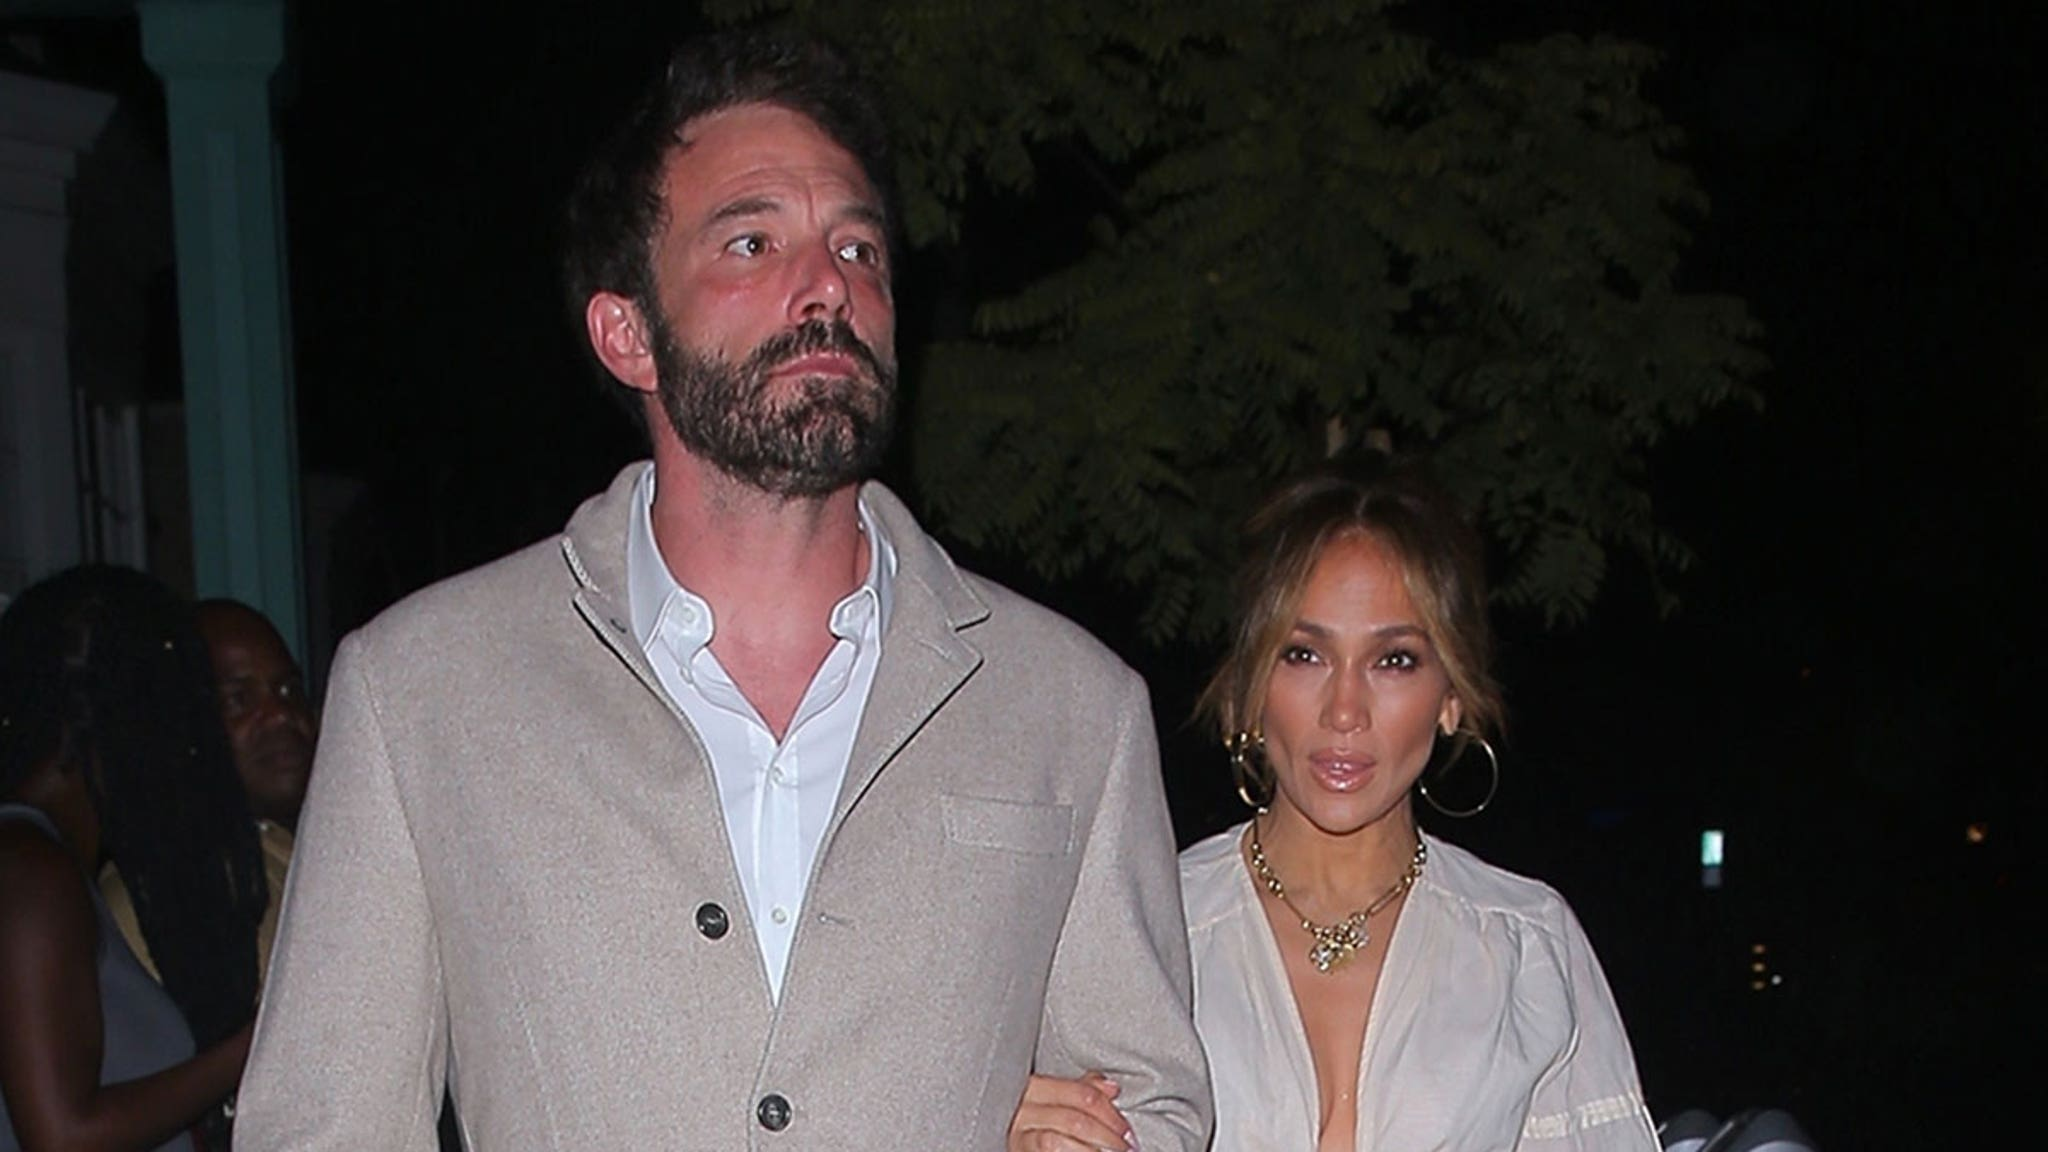 J Lo and Ben Affleck Lock Arms During Date Night in Beverly Hills thumbnail